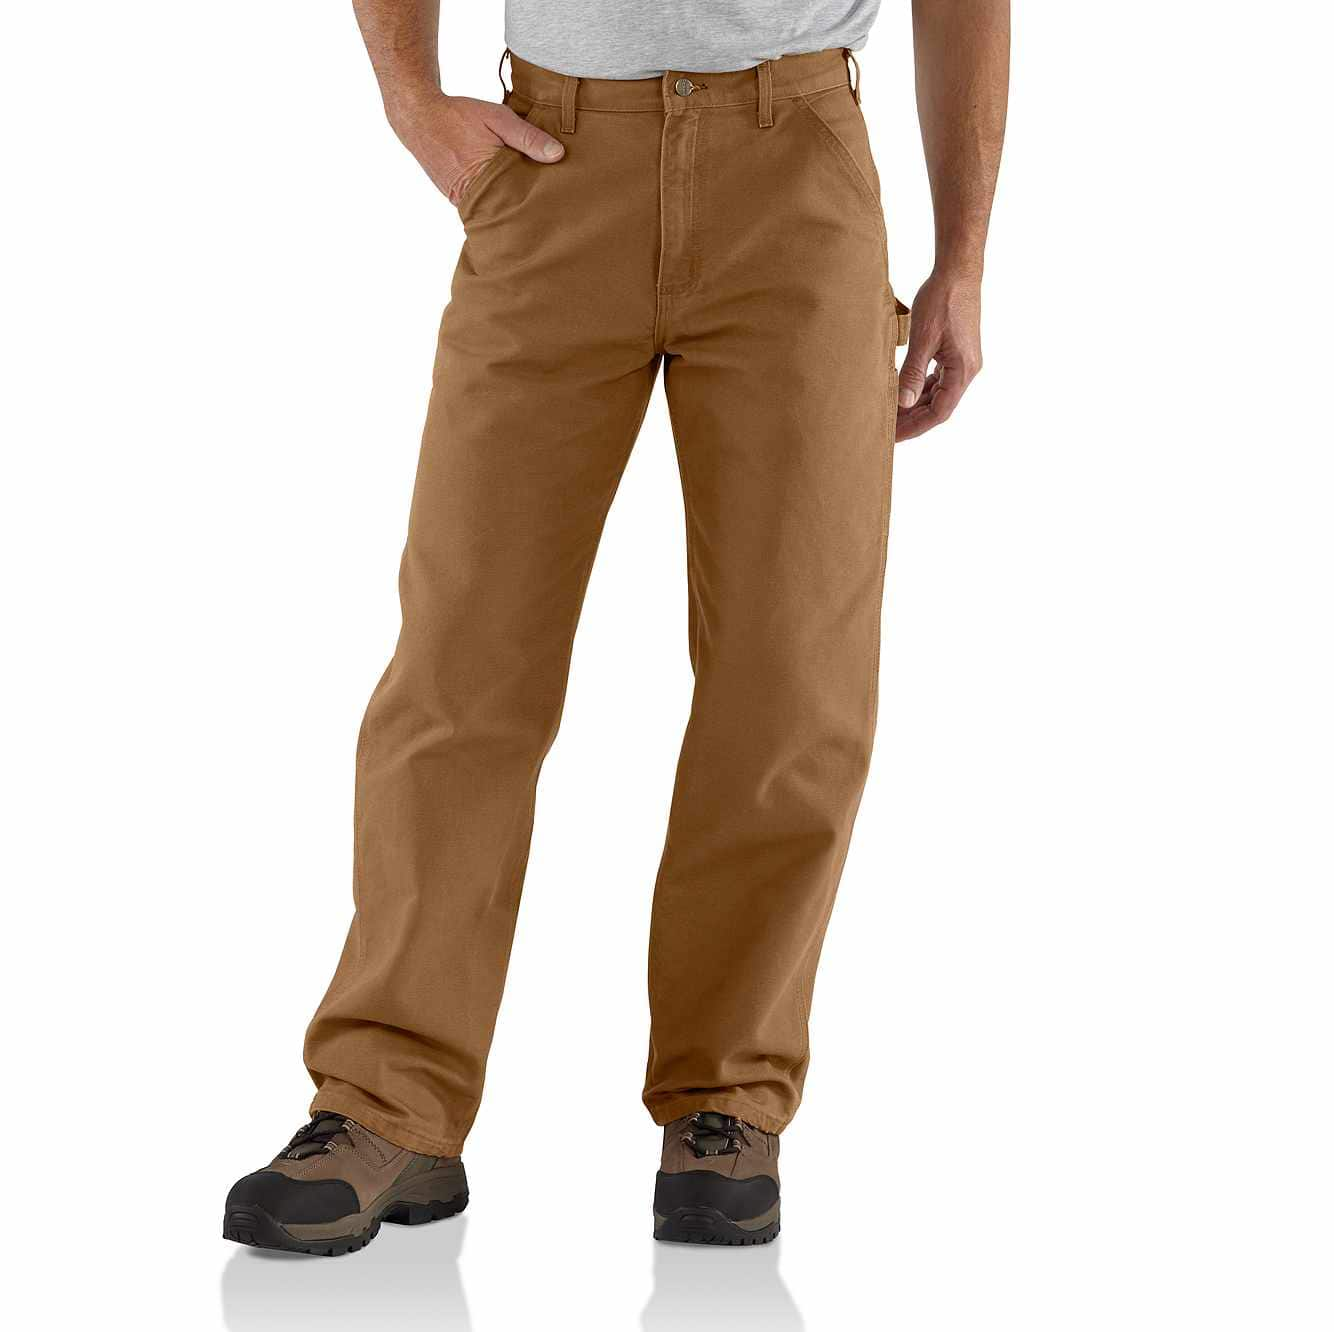 Picture of Washed Duck Work Pant in Carhartt Brown